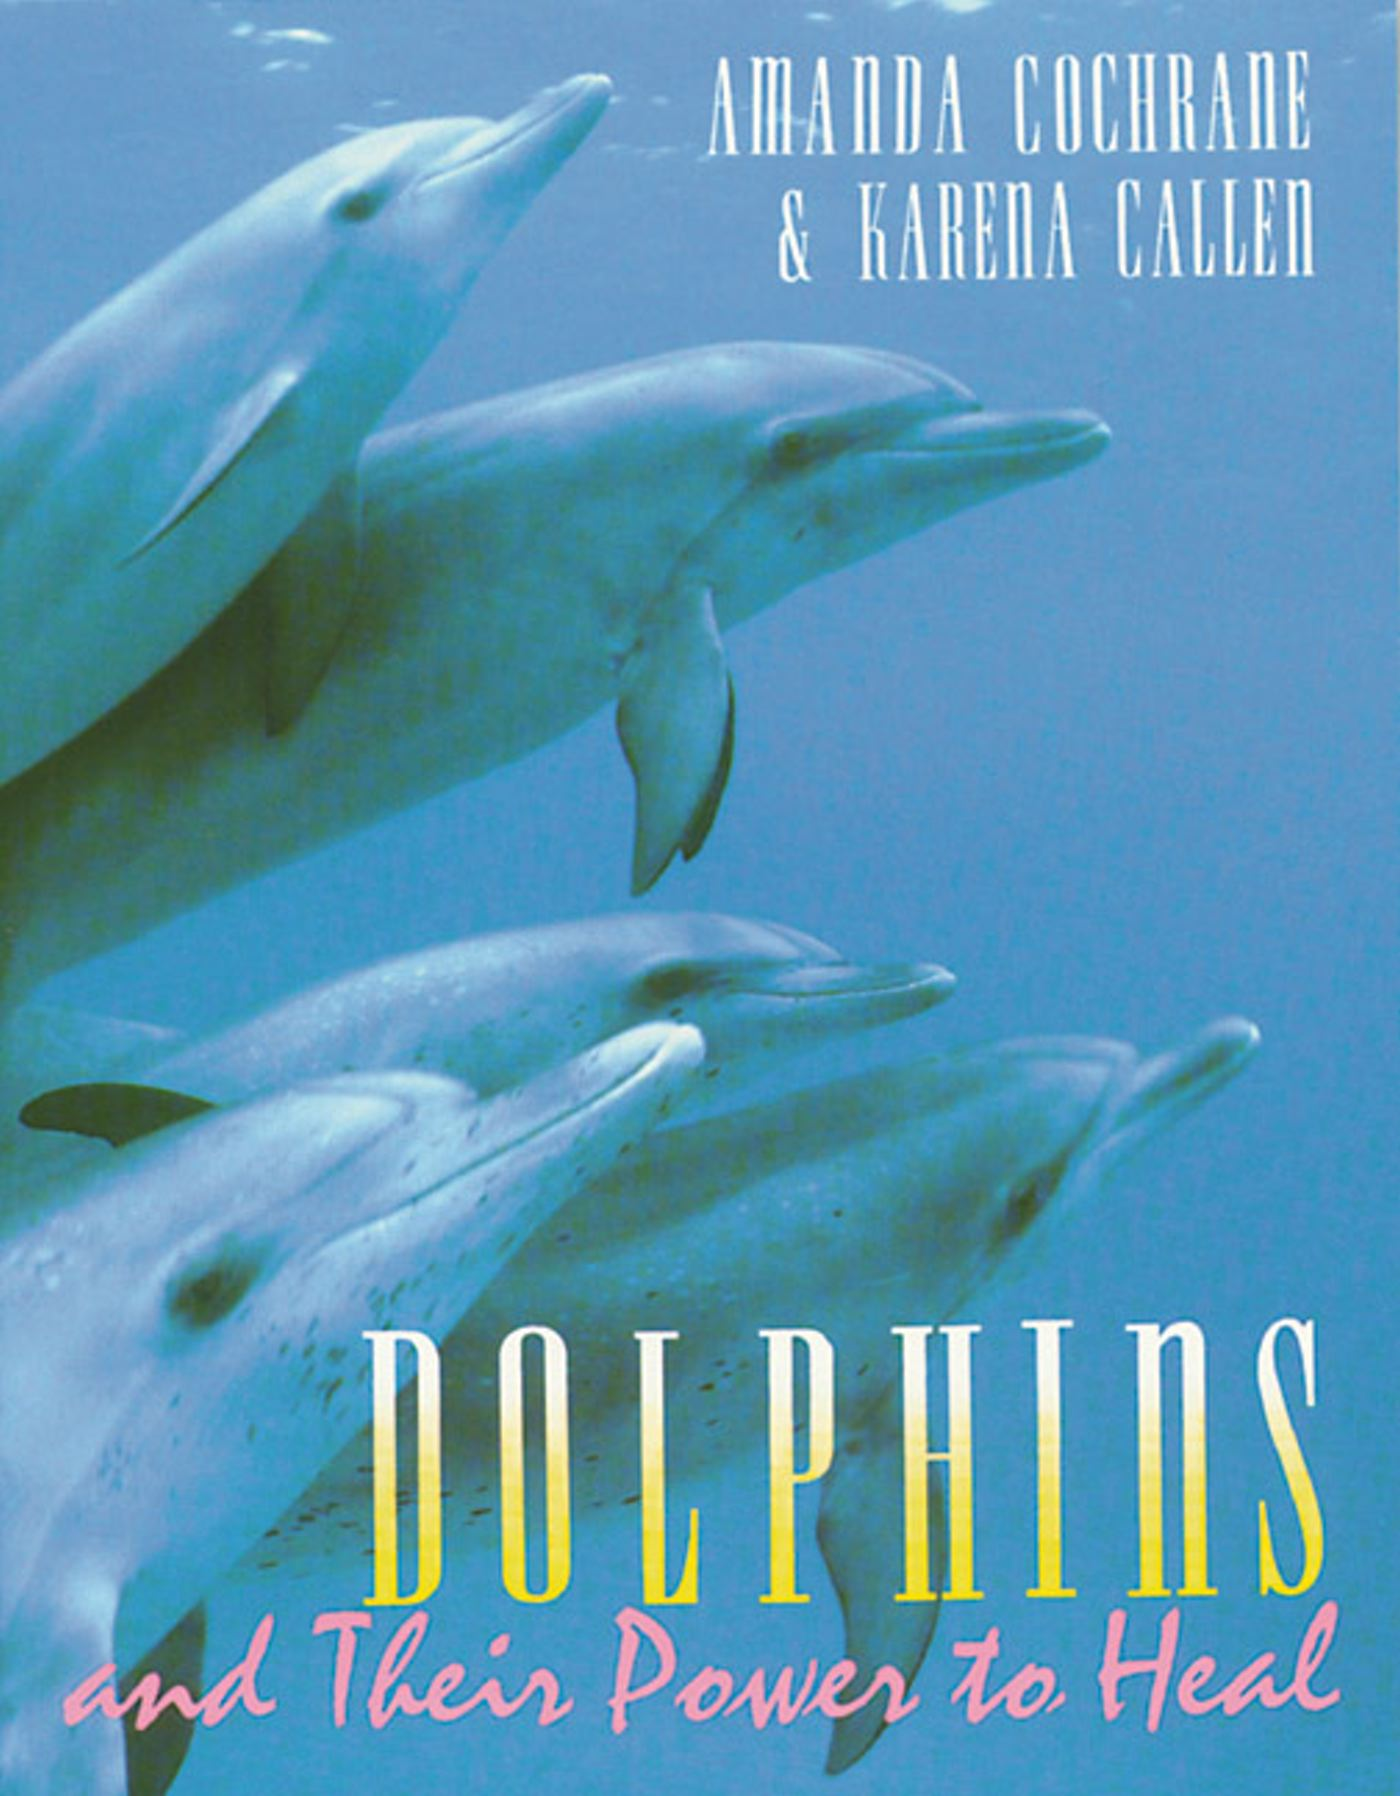 Dolphins and their power to heal 9780892814763 hr